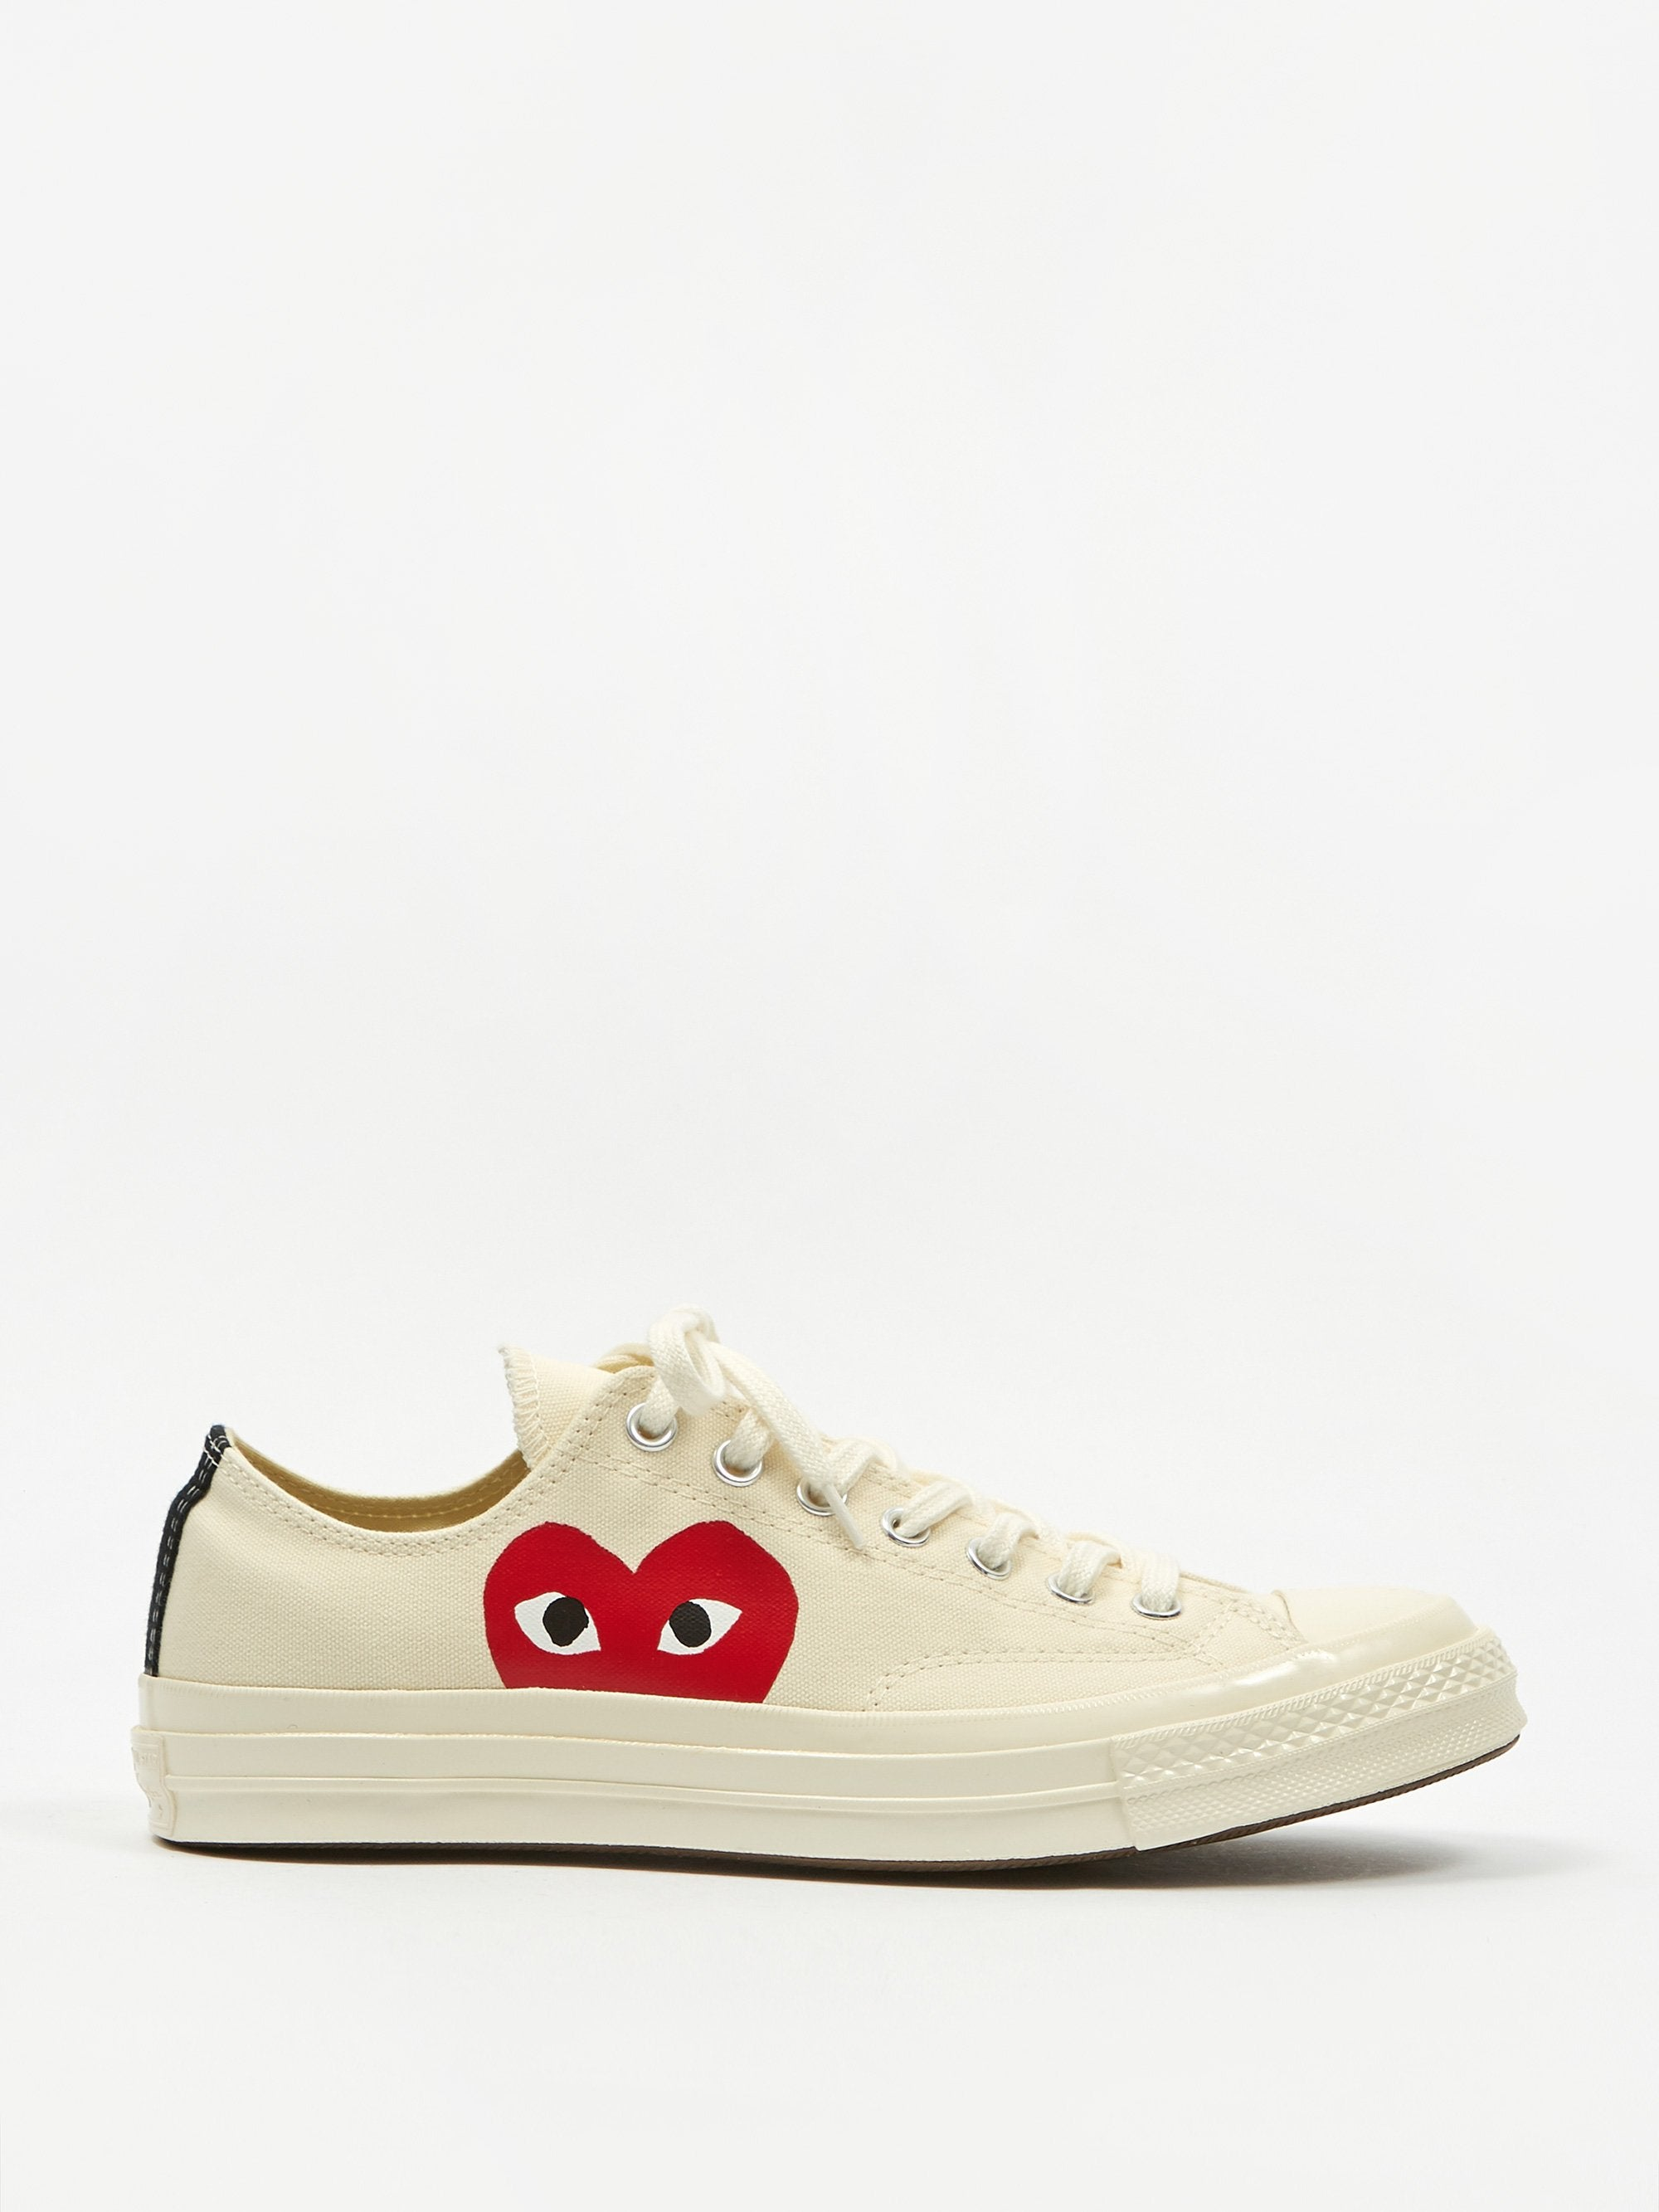 Comme des Garcons Play x Converse Chuck Taylor All Star 70 Ox - Beige